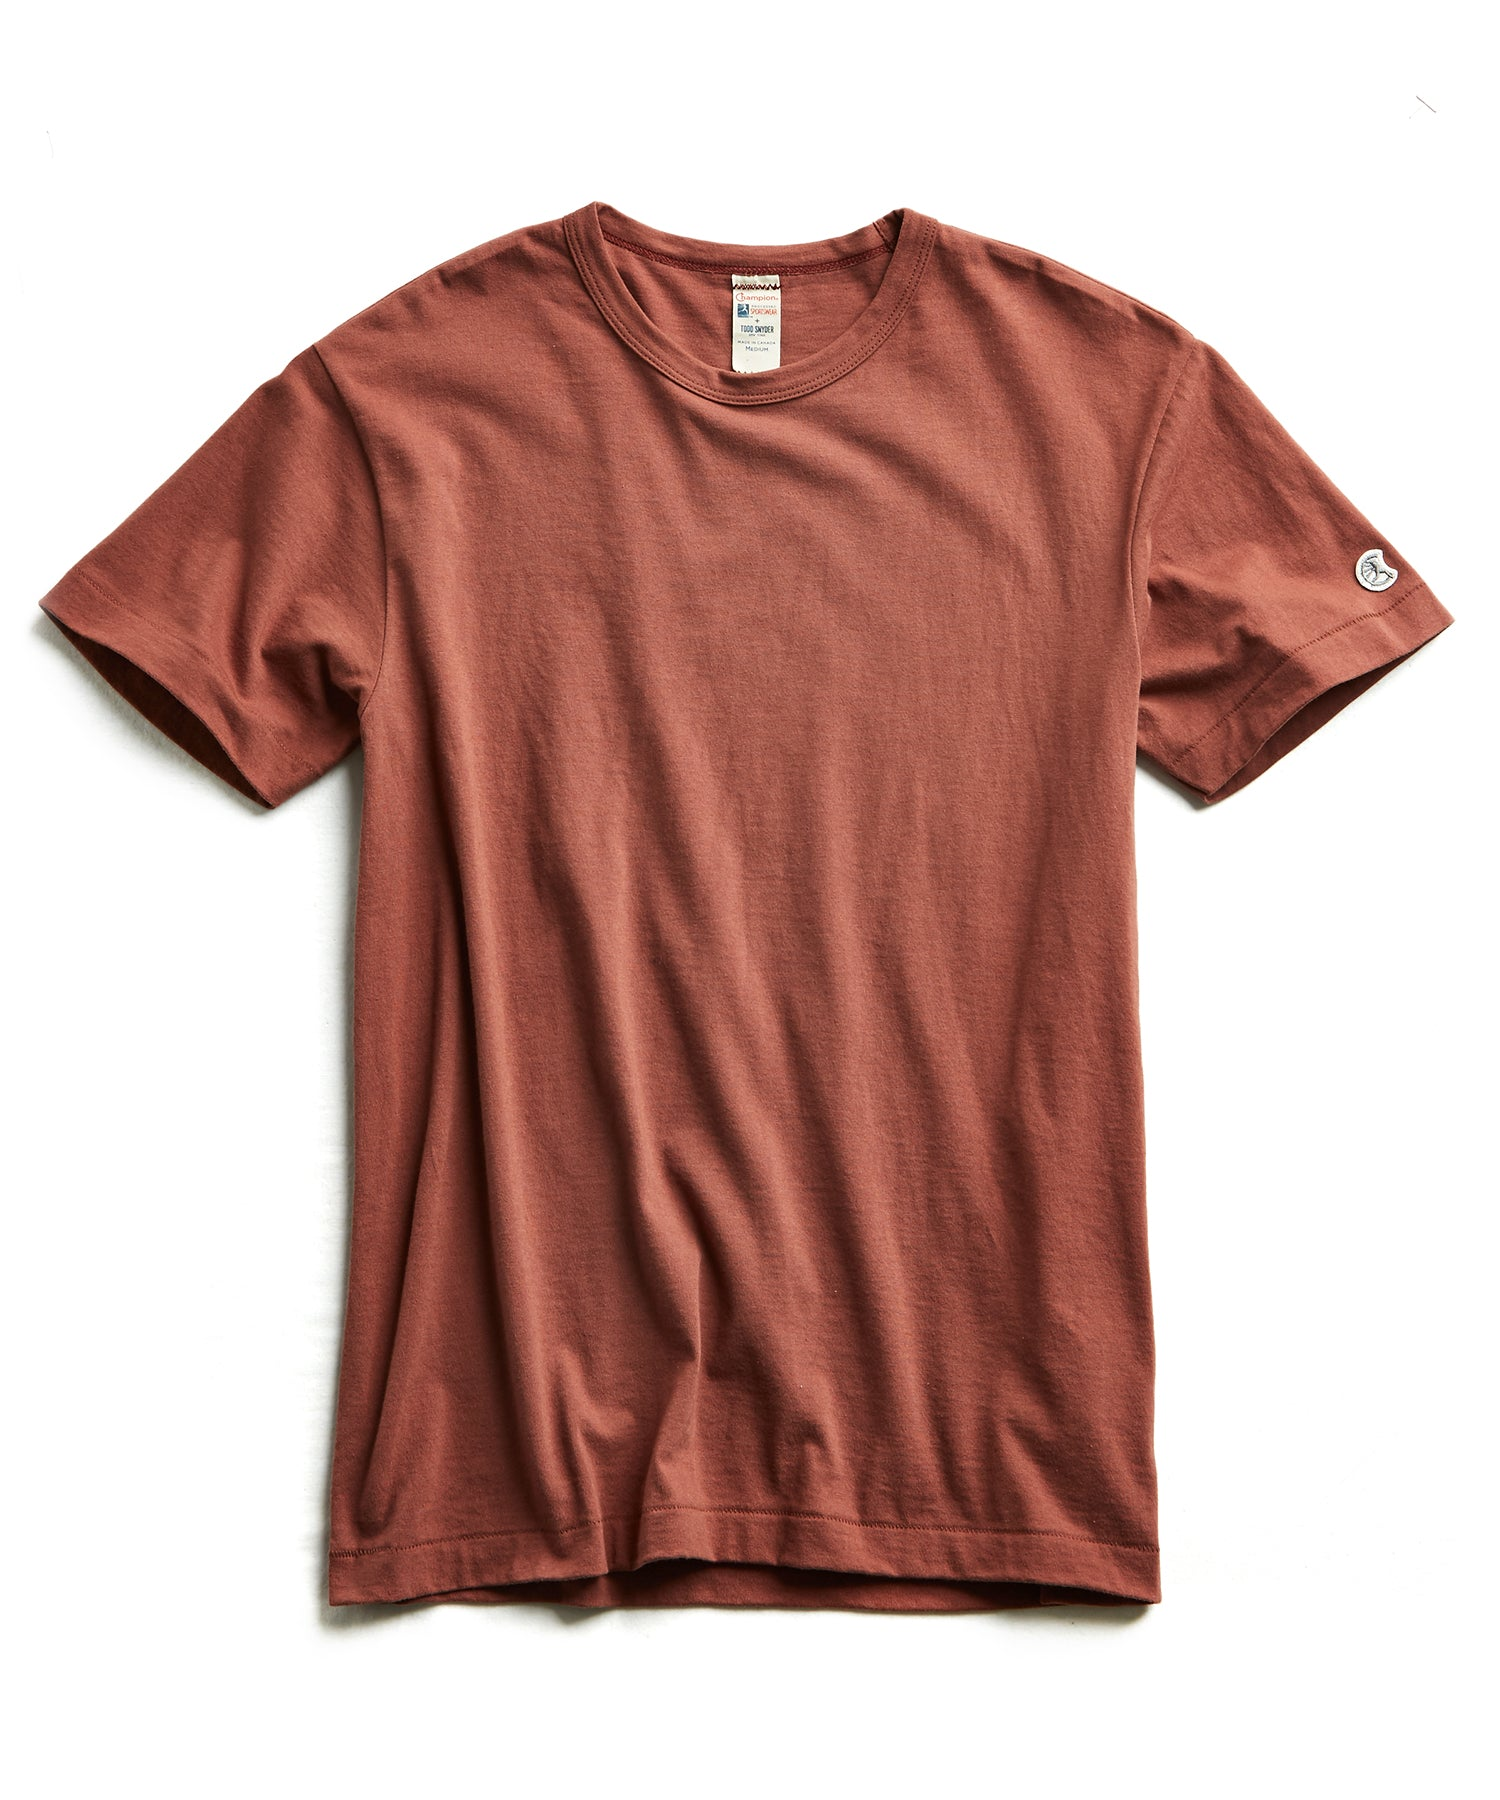 Champion Basic Jersey Tee in Rustica